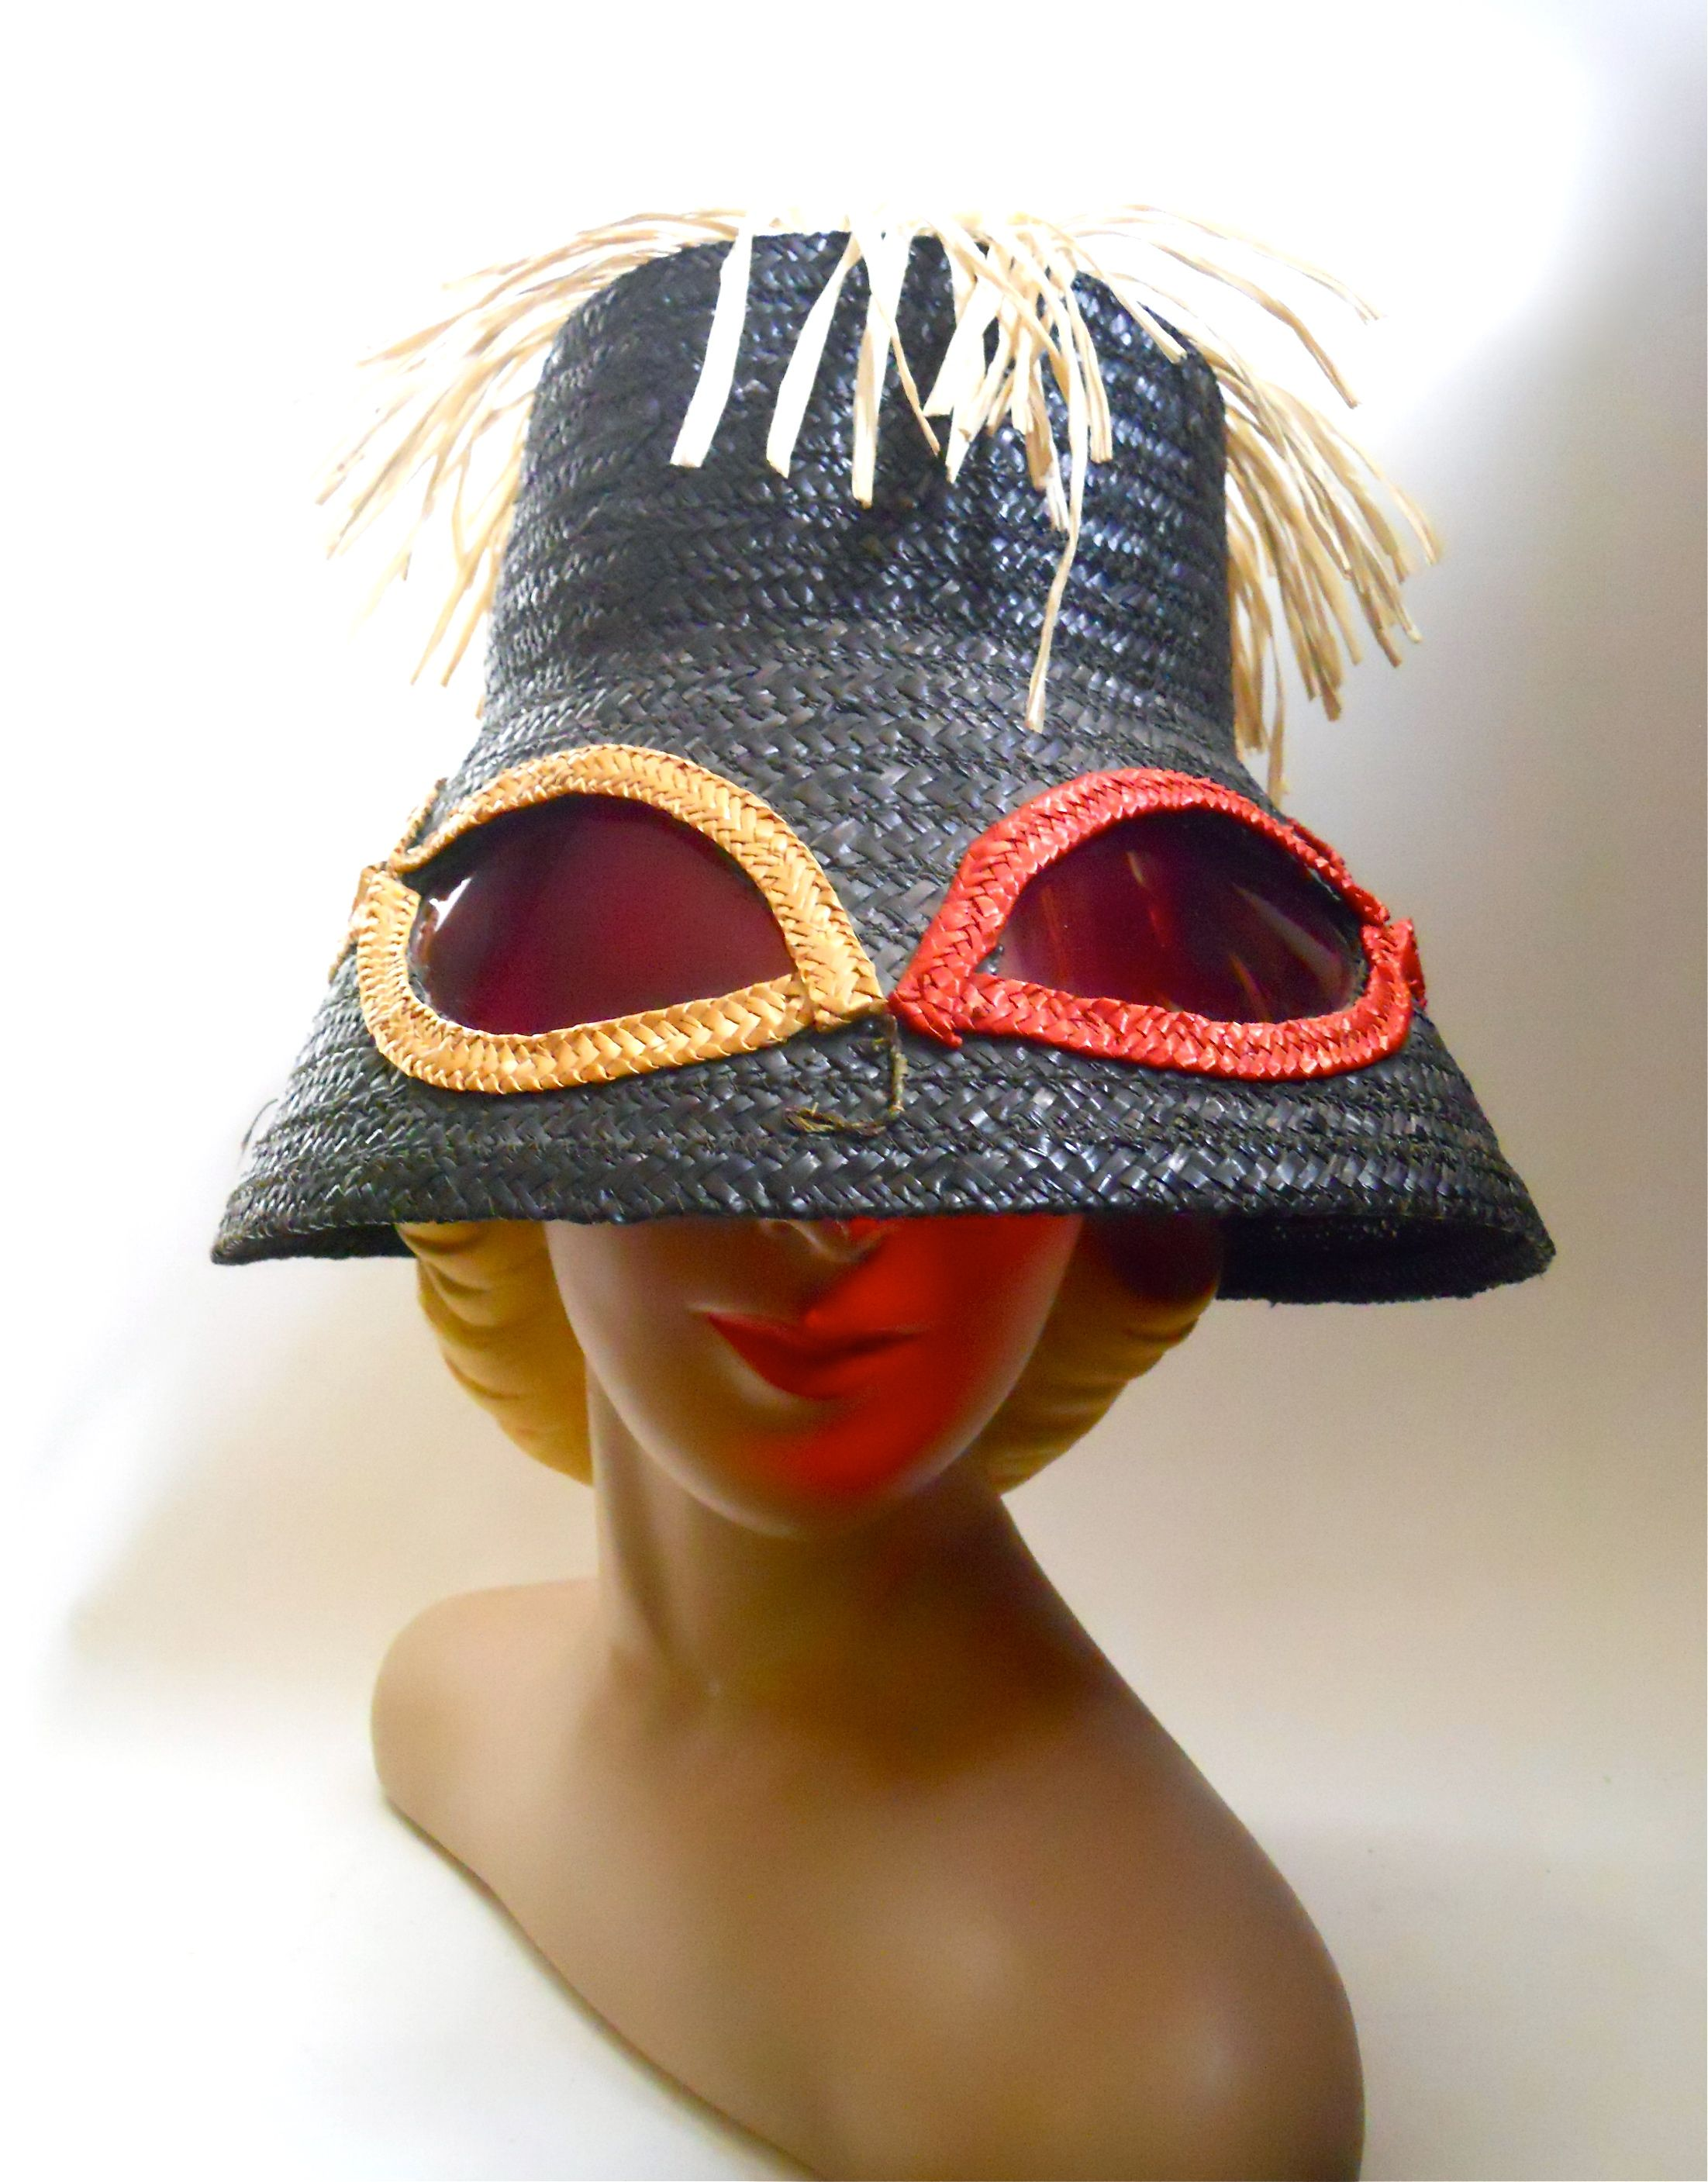 1960s beach hat with built in sunglasses and raffia